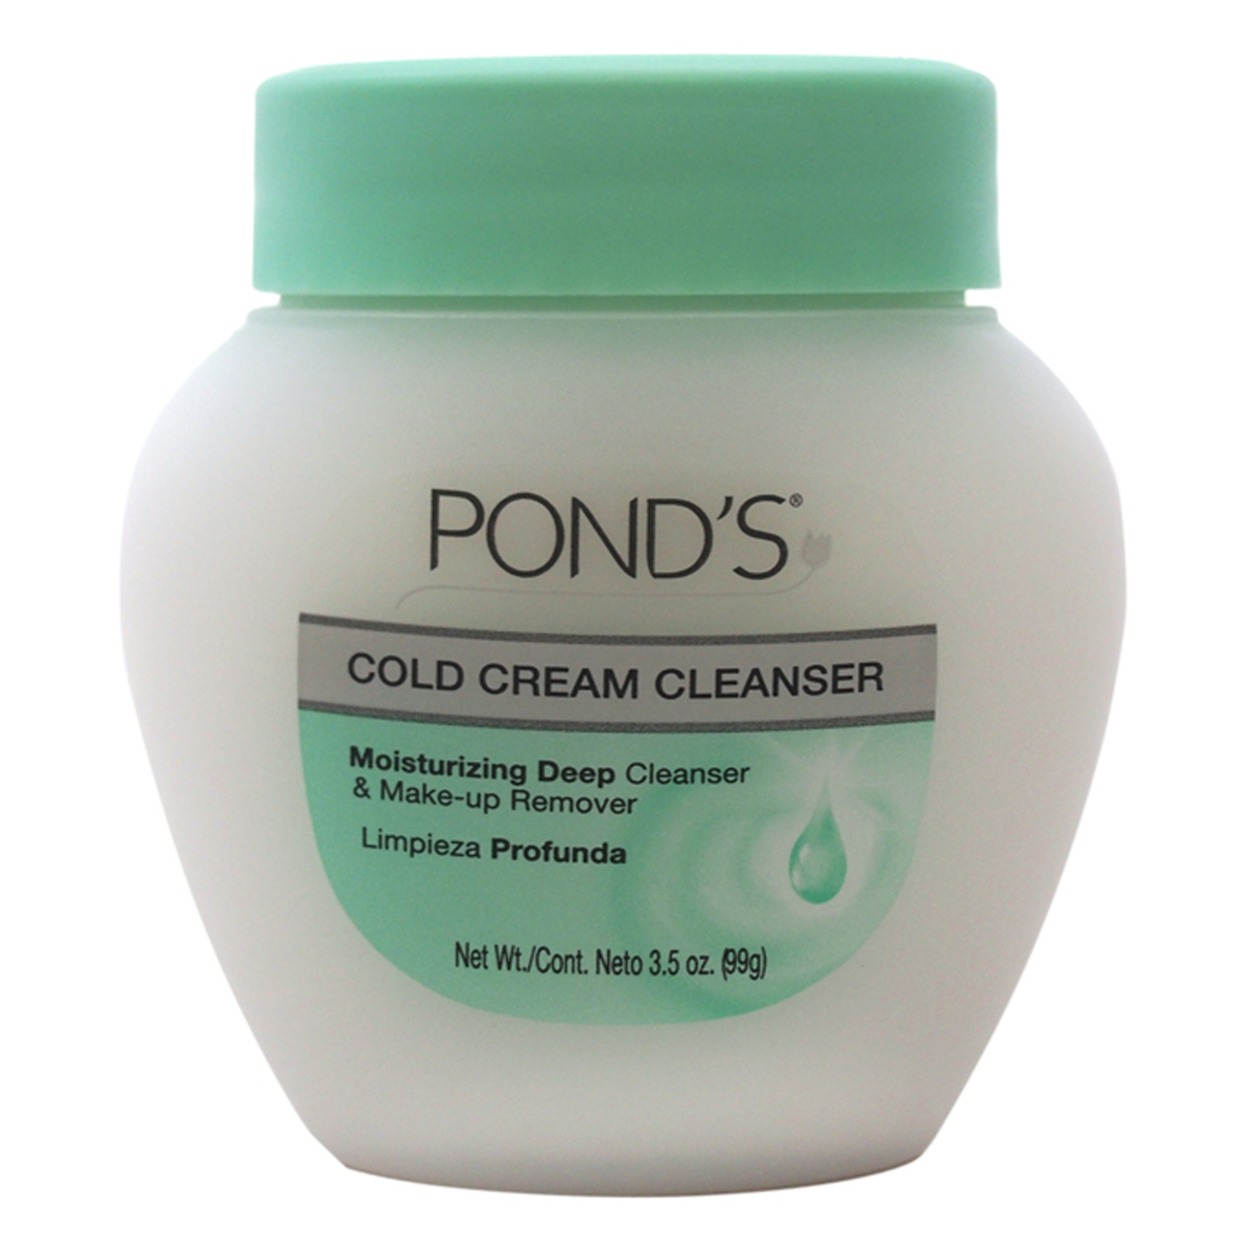 Cold Cream Cleanser by Pond's for Unisex - 3.5 oz Cleanser 5898e1cac98fc4508f3b6f42